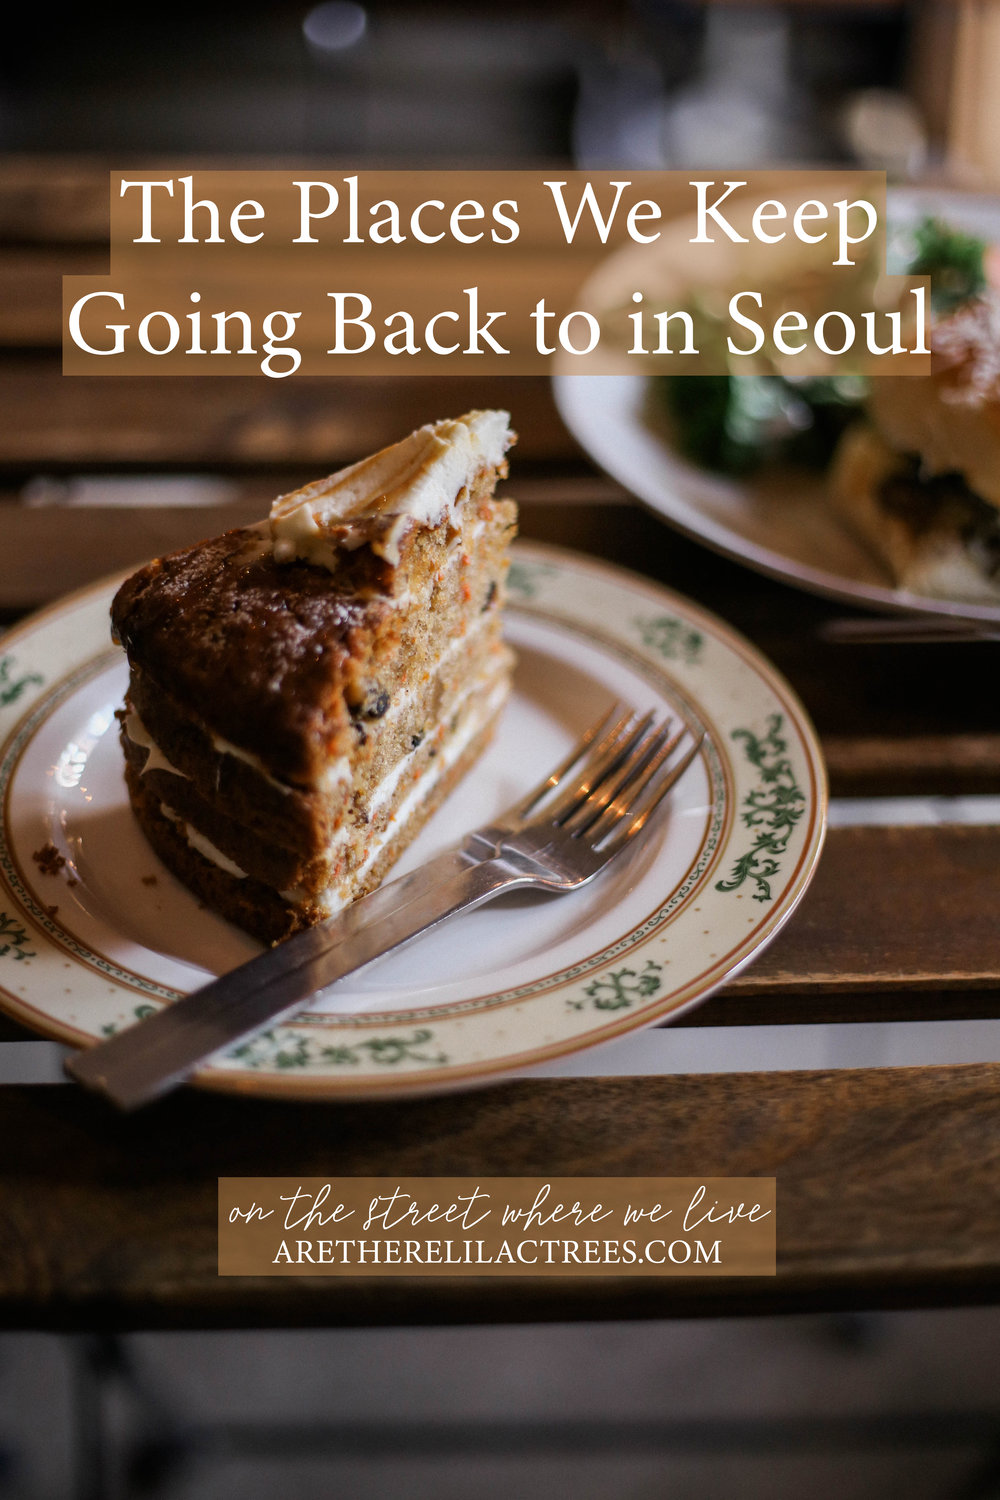 The Places We Keep Going Back to in Seoul | On the Street Where We Live (aretherelilactrees.com)